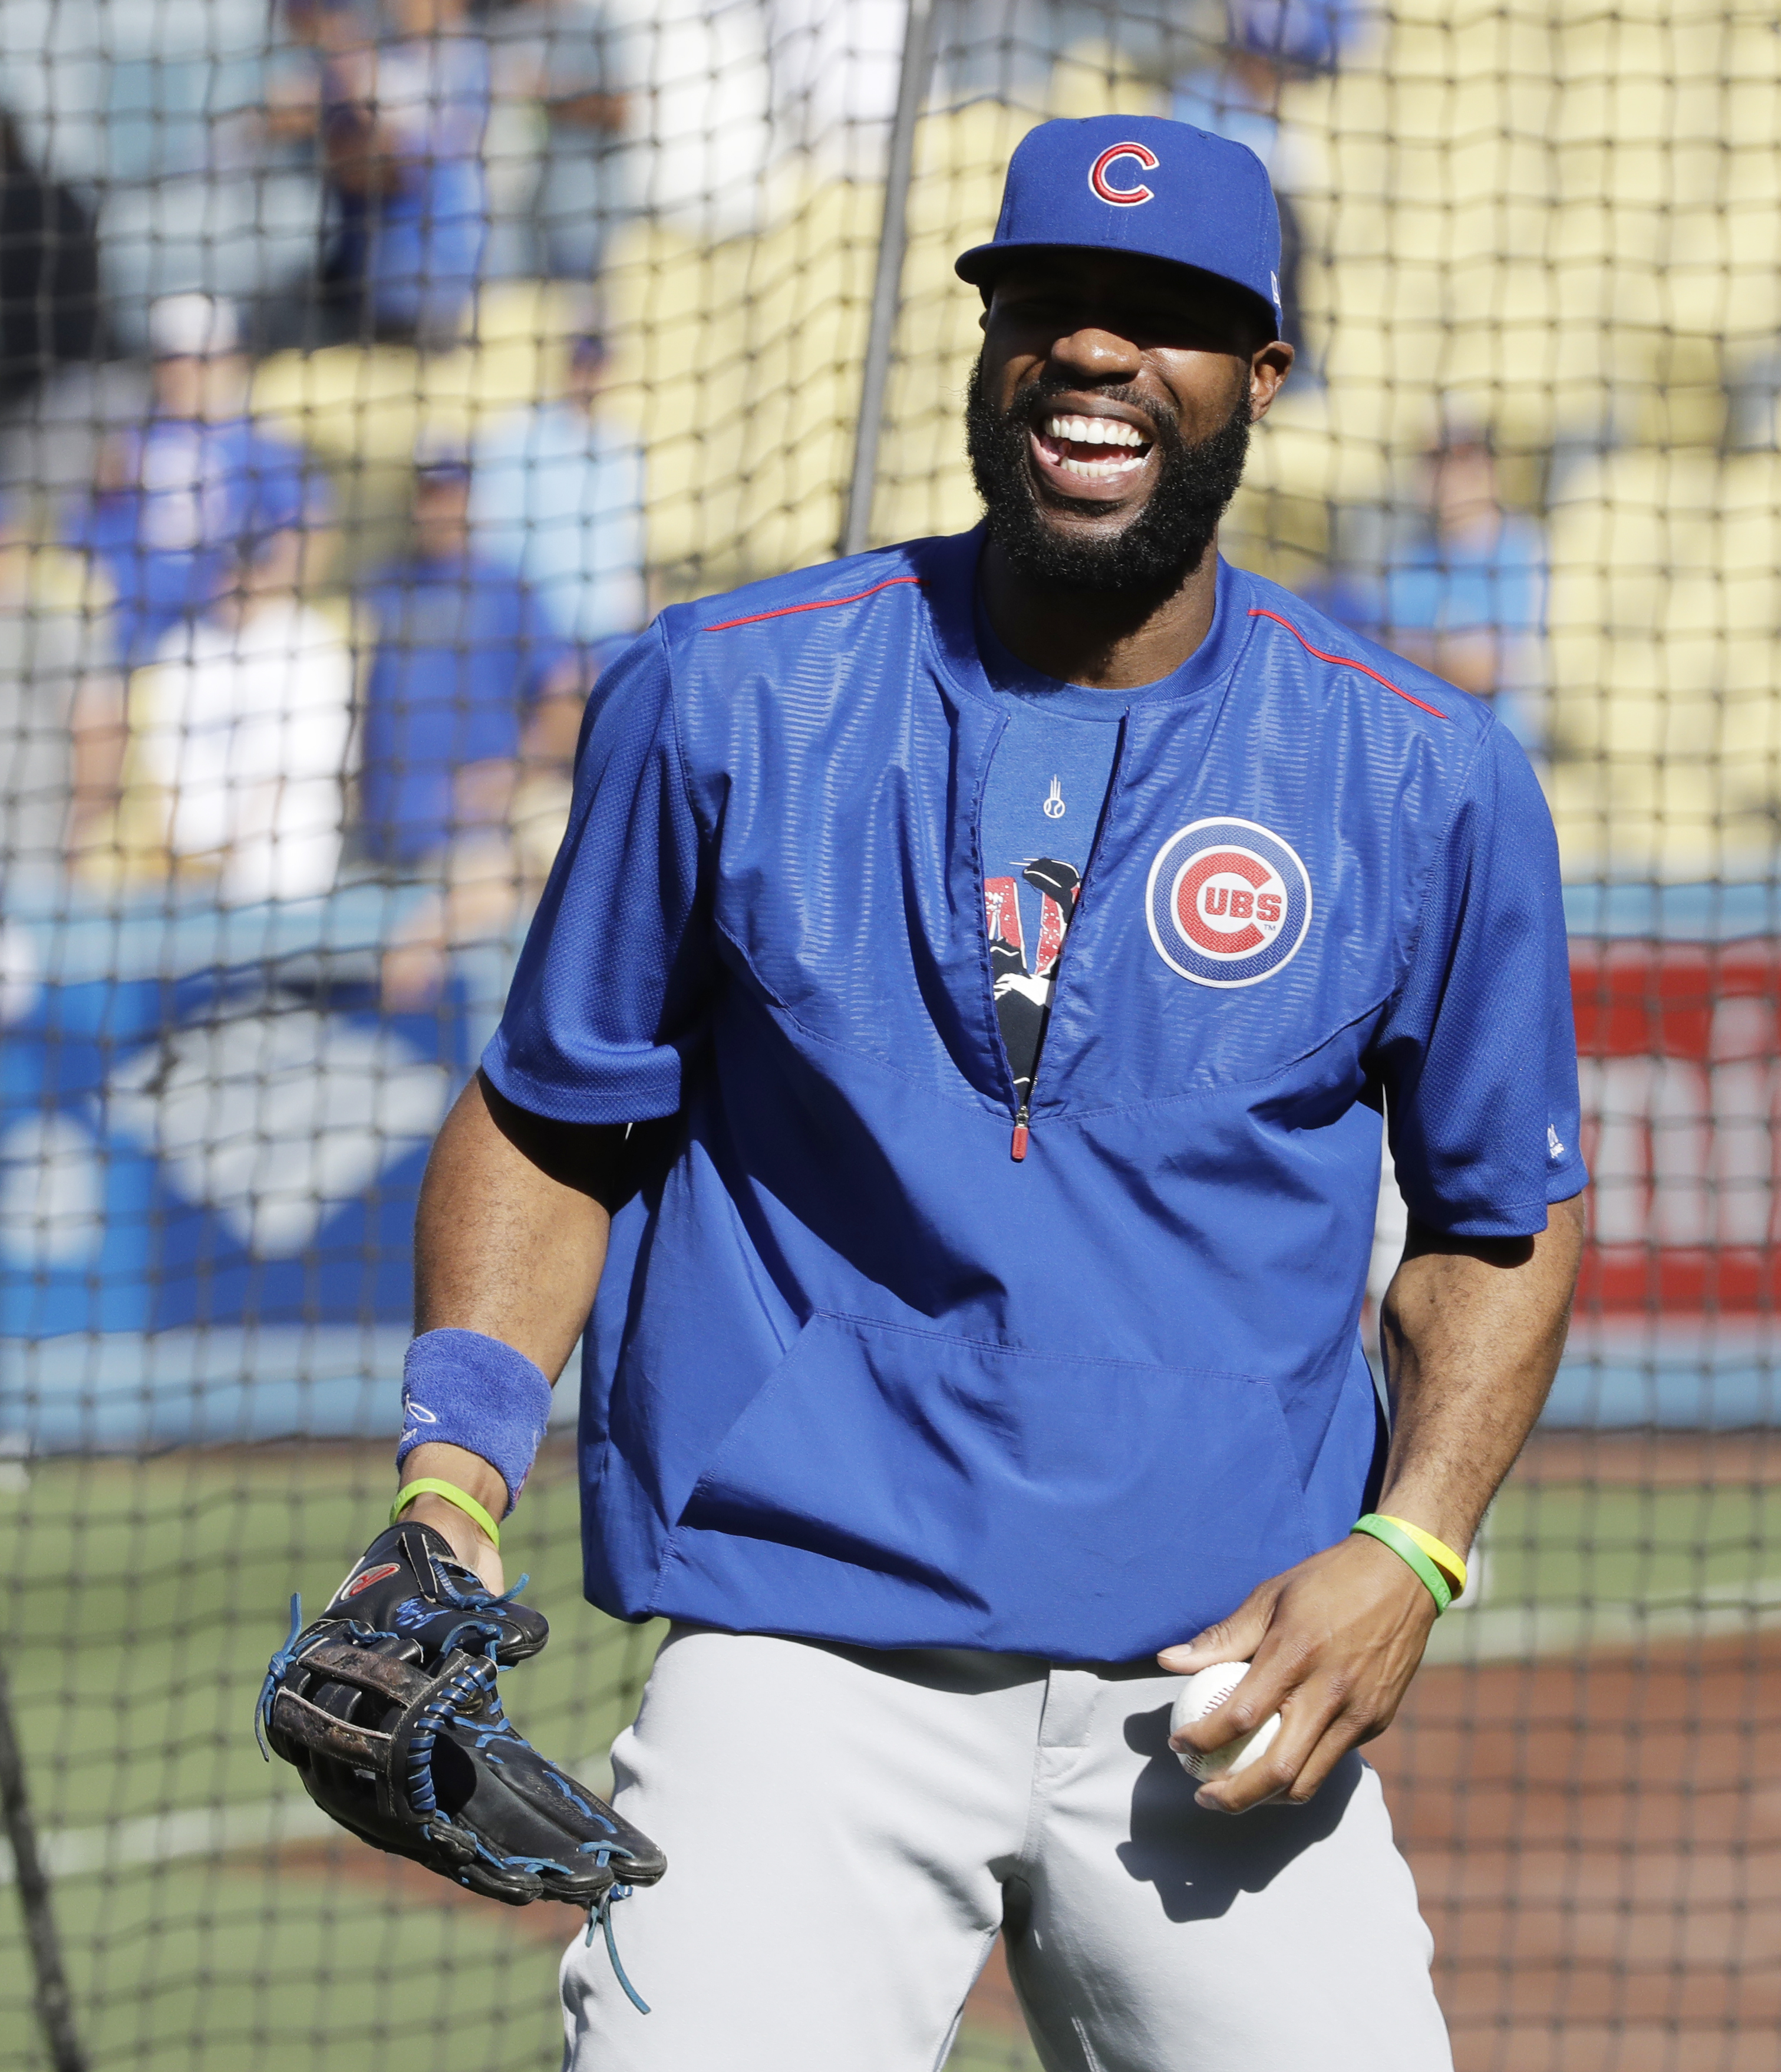 Chicago Cubs' Jason Heyward smiles before Game 3 of the National League baseball championship series against the Los Angeles Dodgers Tuesday, Oct. 18, 2016, in Los Angeles. (AP Photo/David J. Phillip)